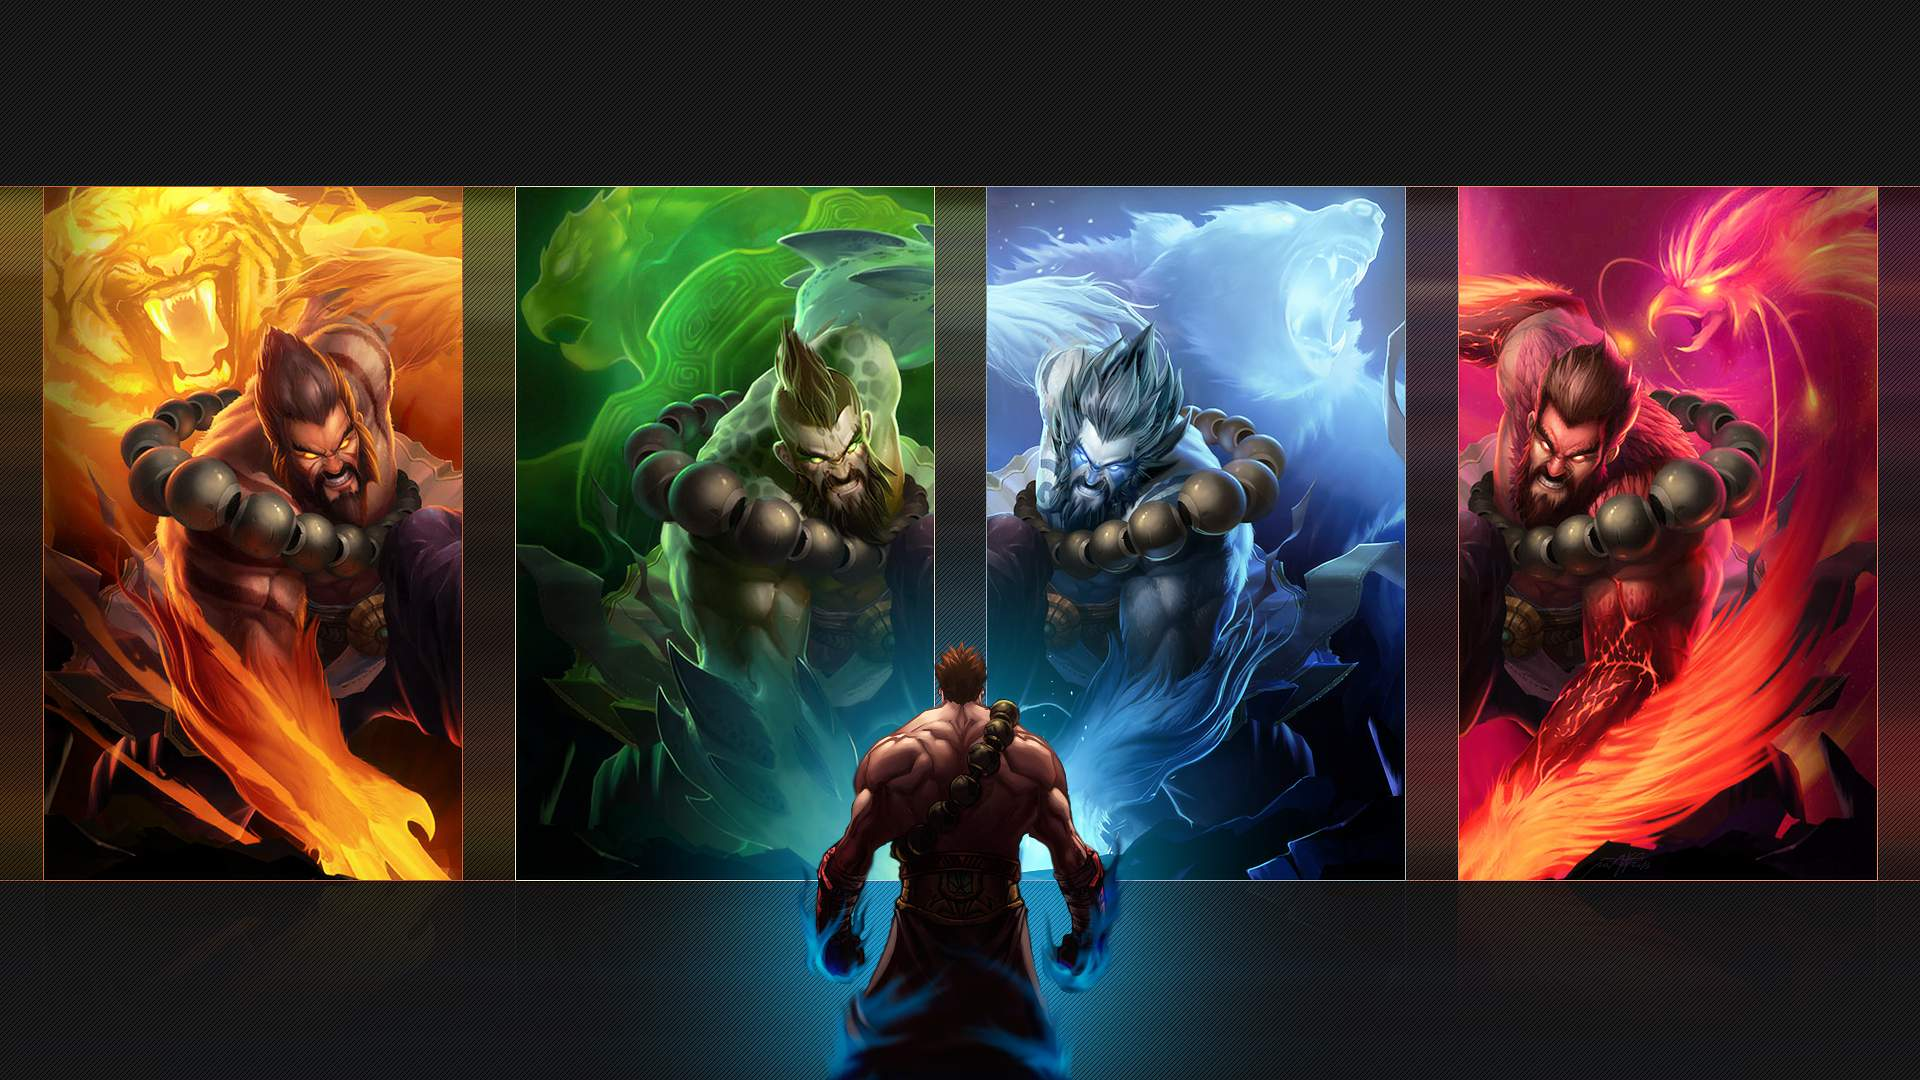 udyr-league-of-legends-wallpaper-background-hd-12